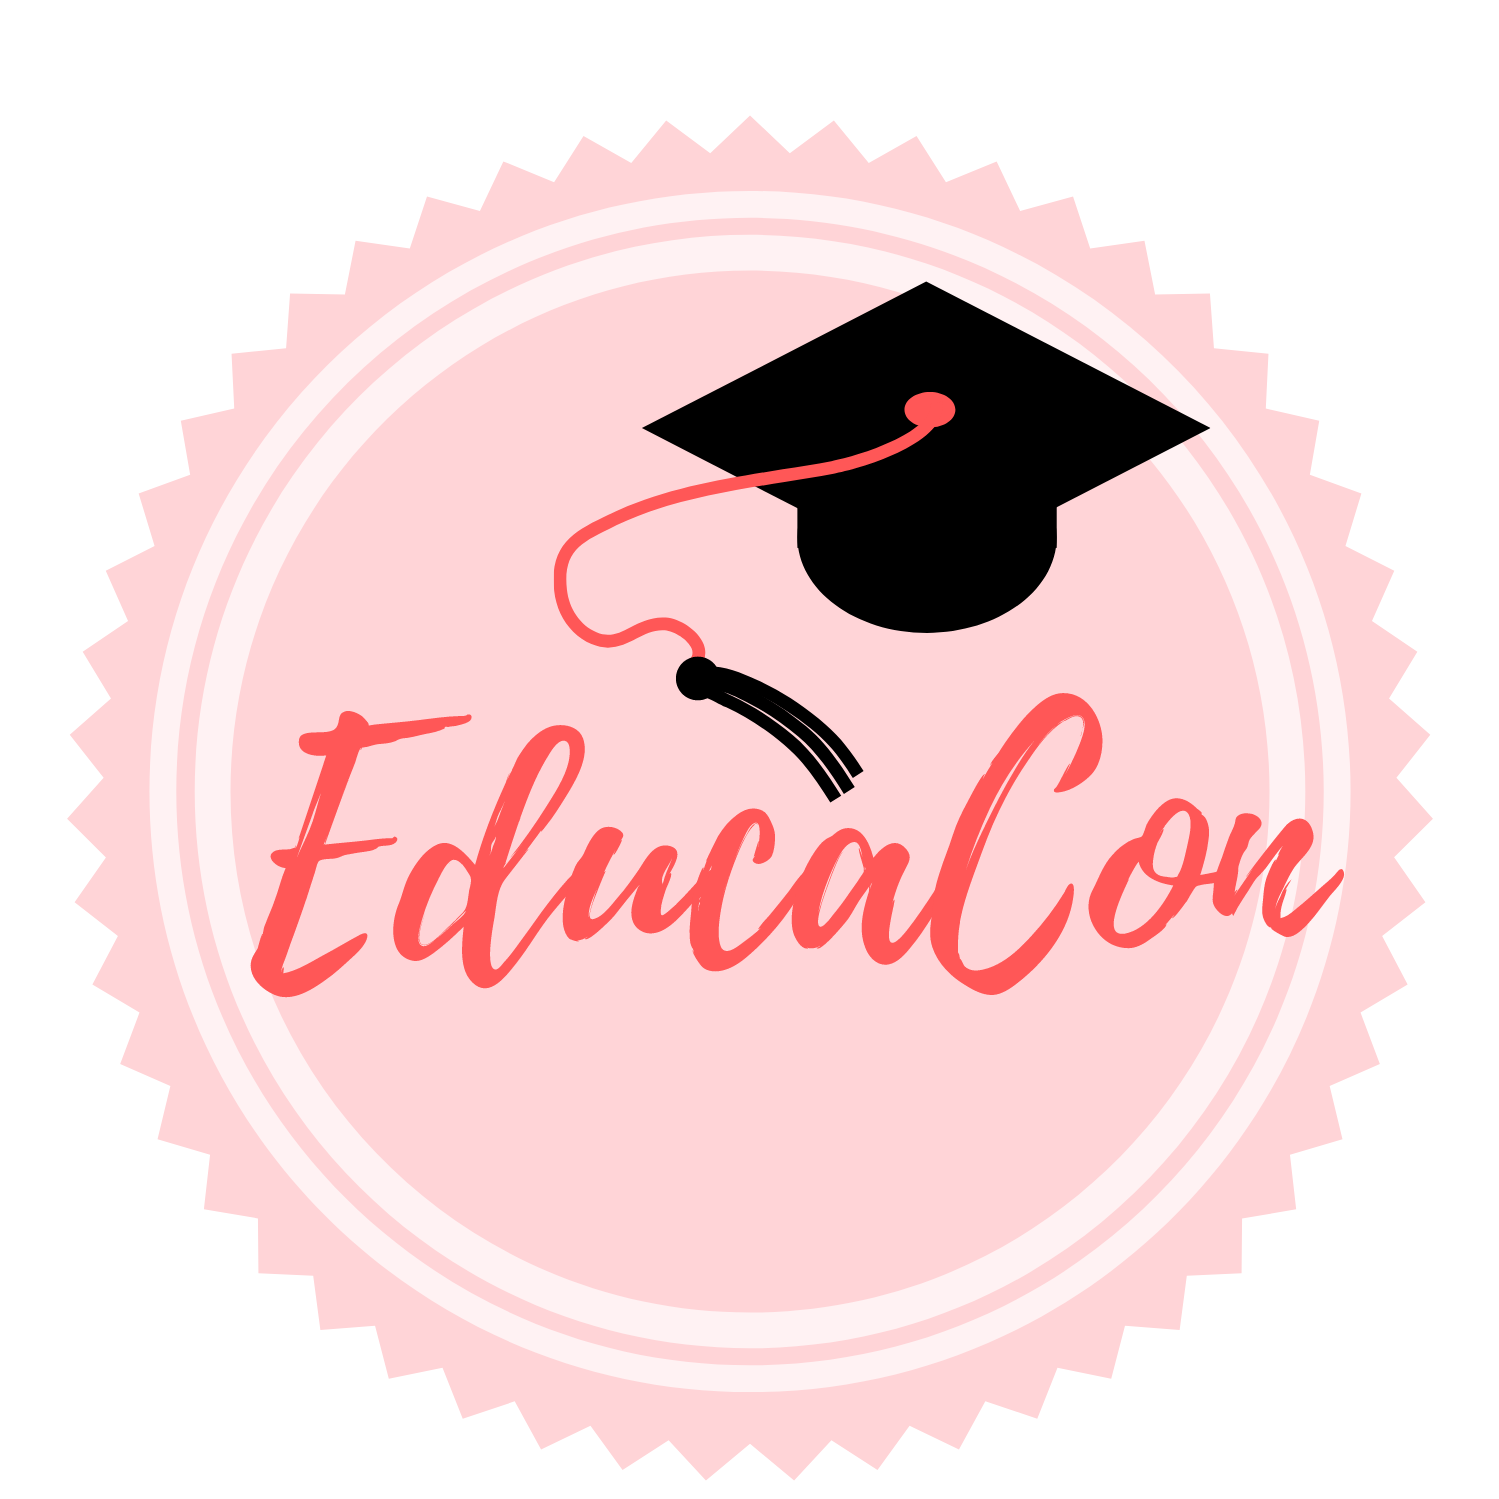 🌸 Educacon, tu blog de aprendizaje 🌸